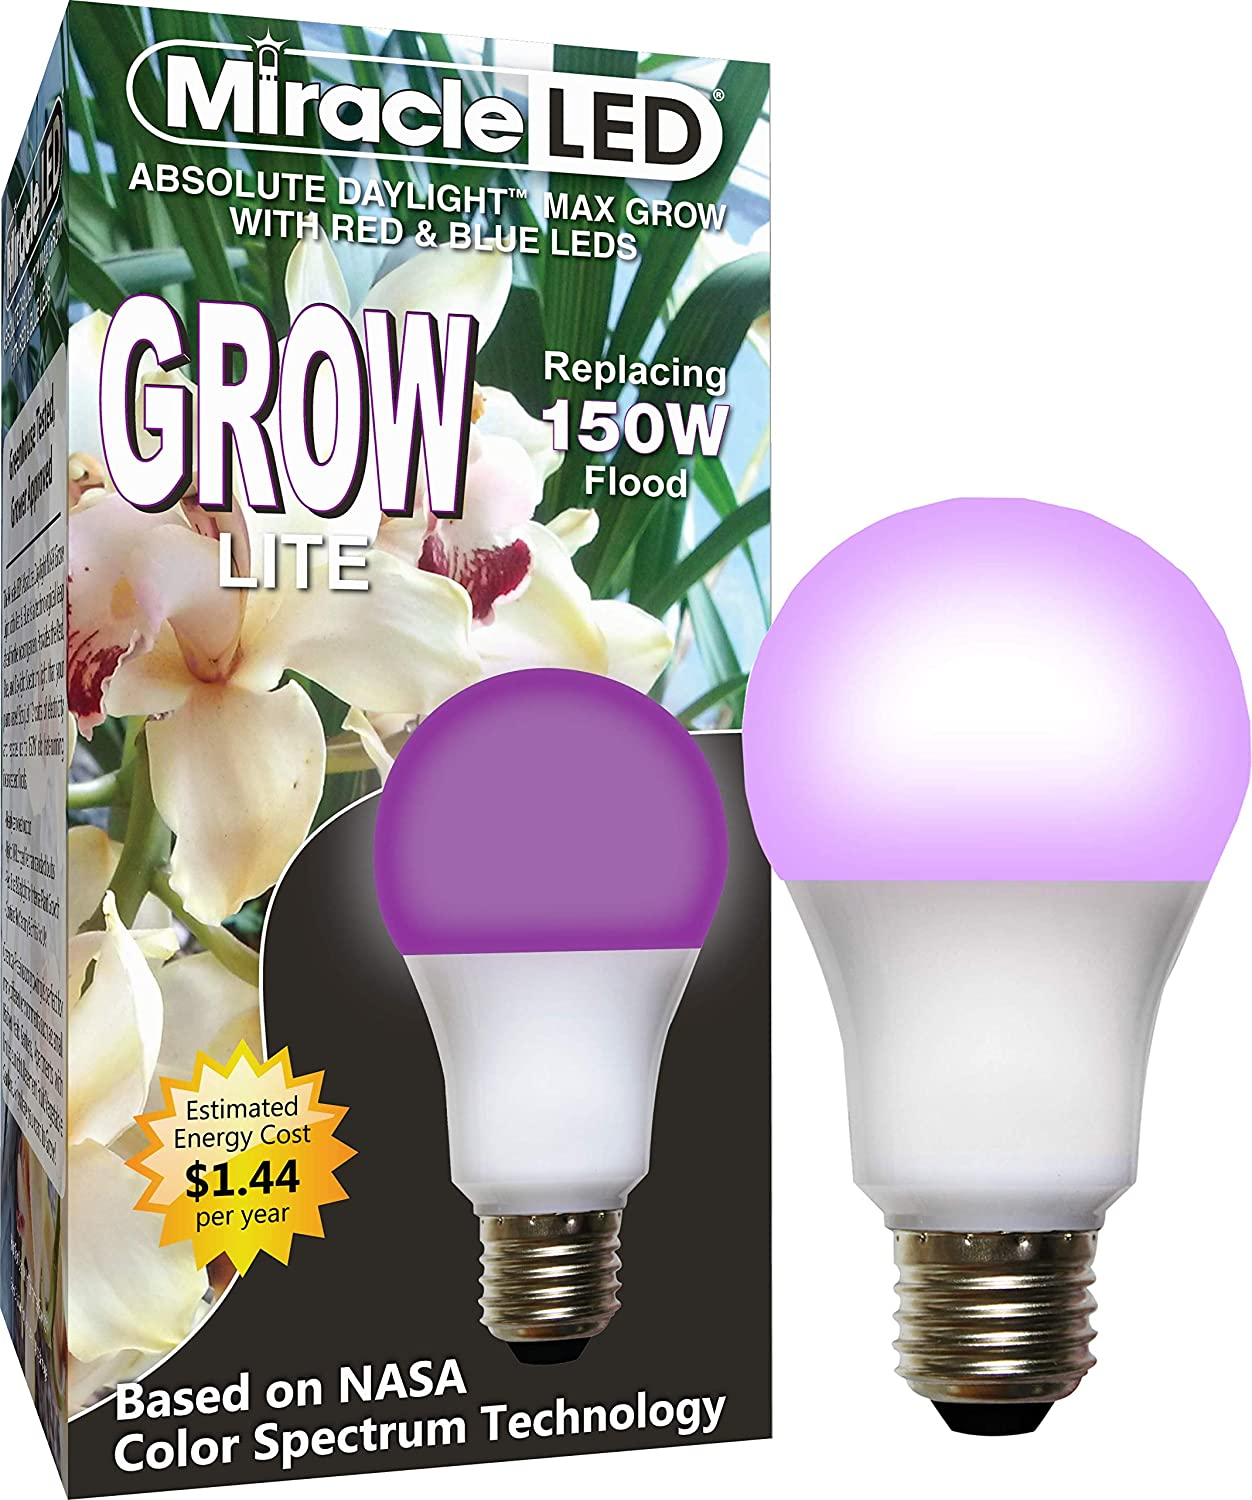 Miracle LED 605186 LEDs 12W Absolute Daylight MAX Grow Lite with Red & Blue Single Pack Box, Purple